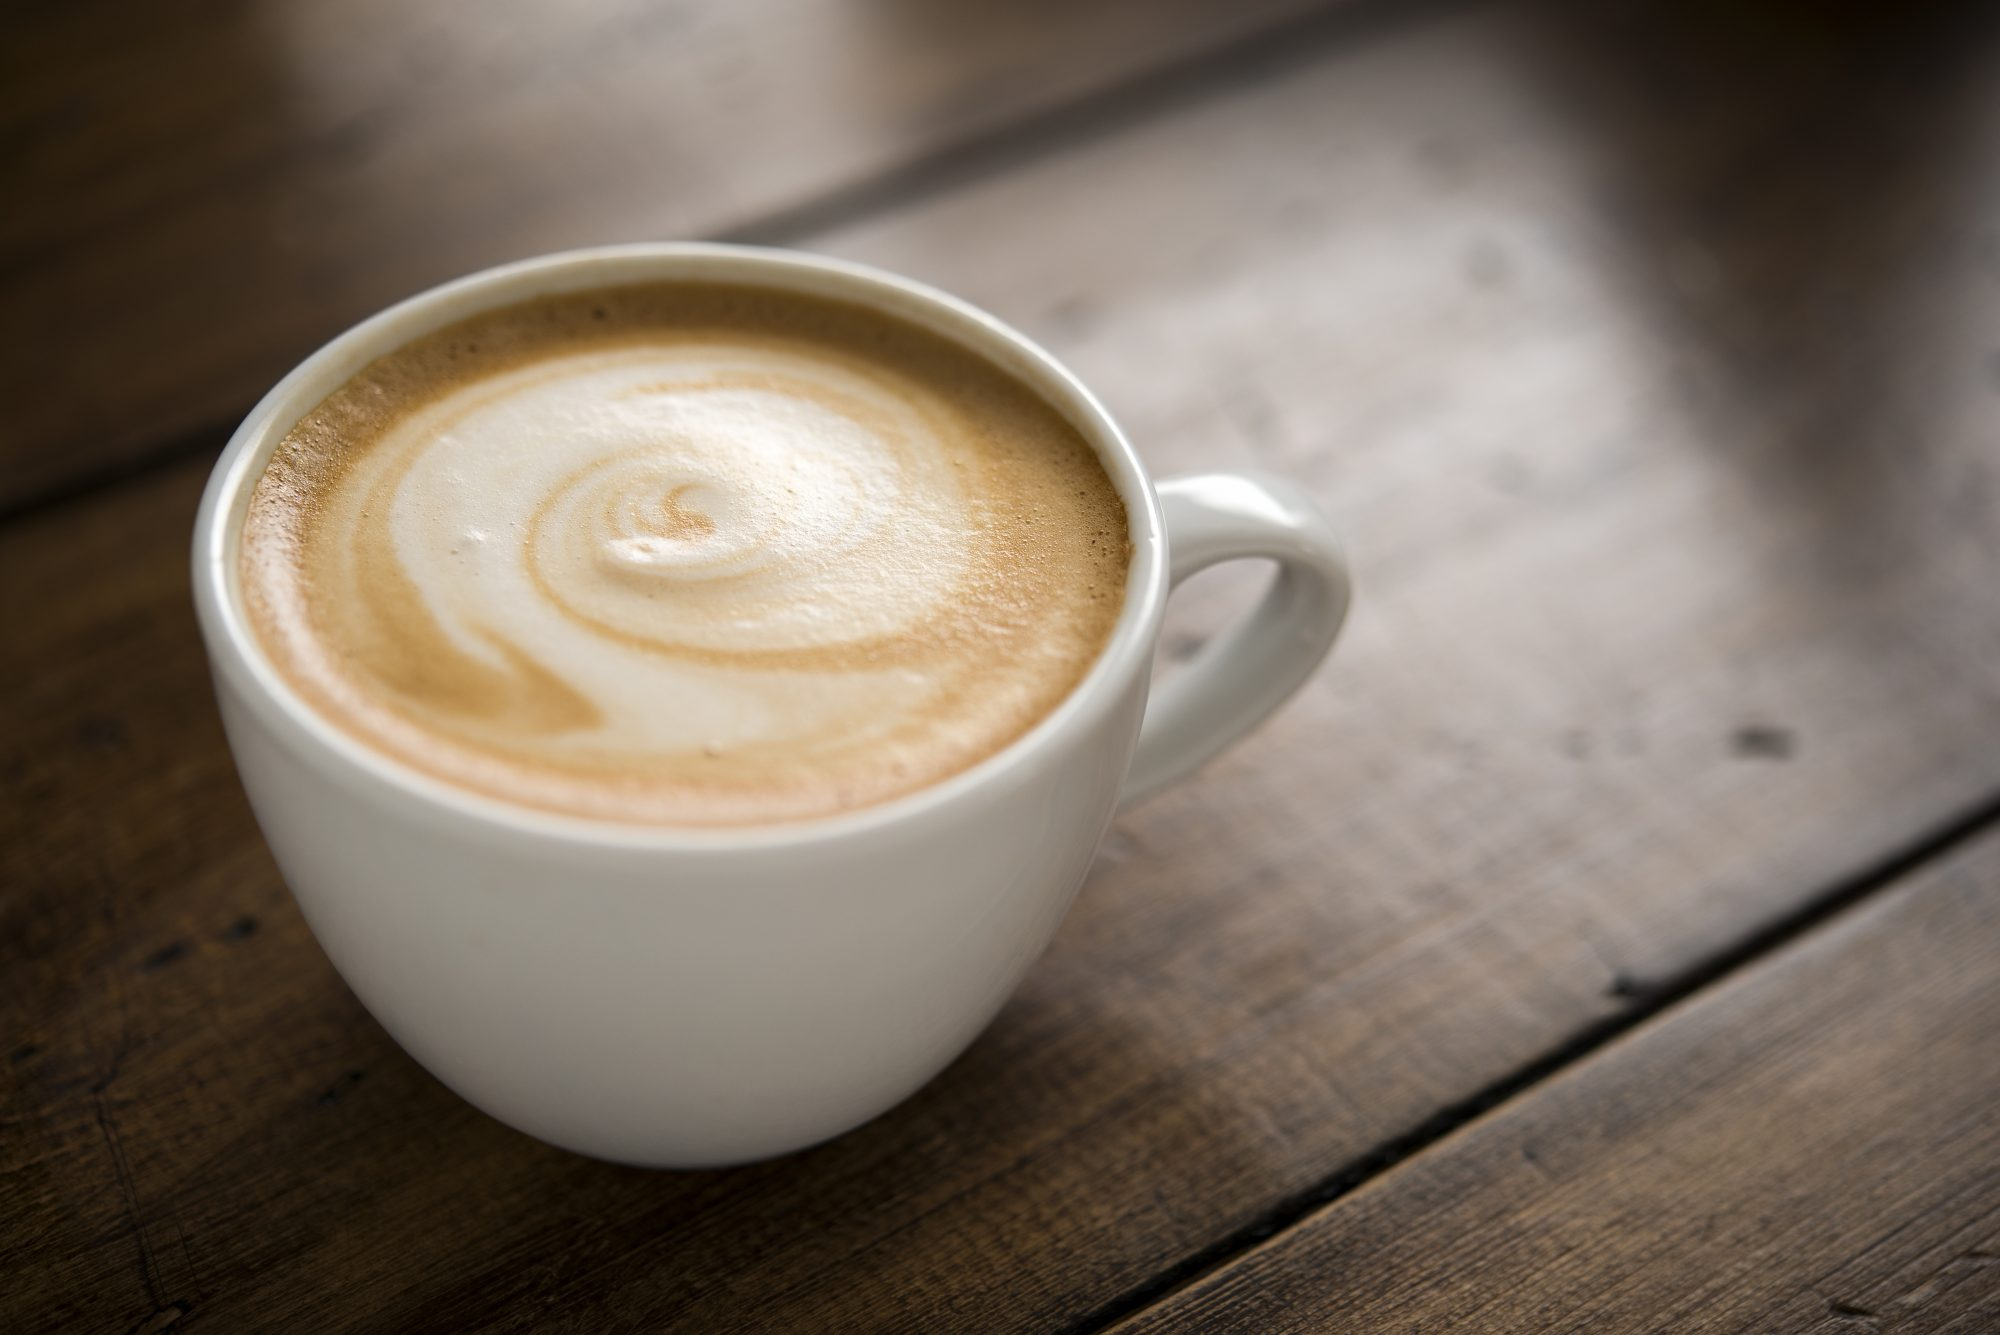 Myth: Caffeine causes breast cancer.